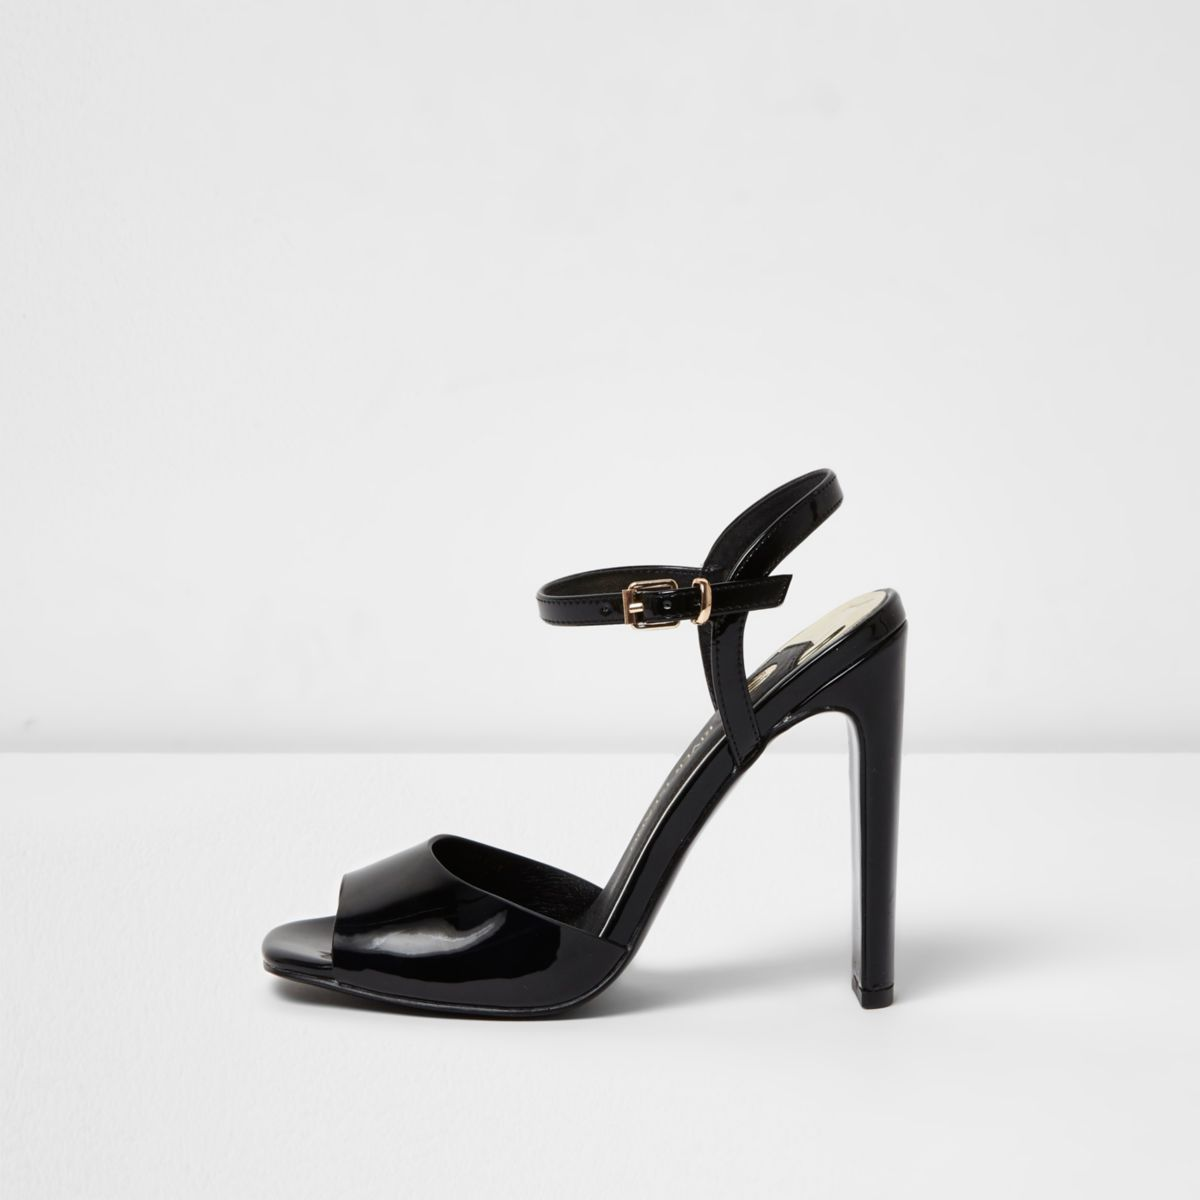 Black peep toe heeled sandals